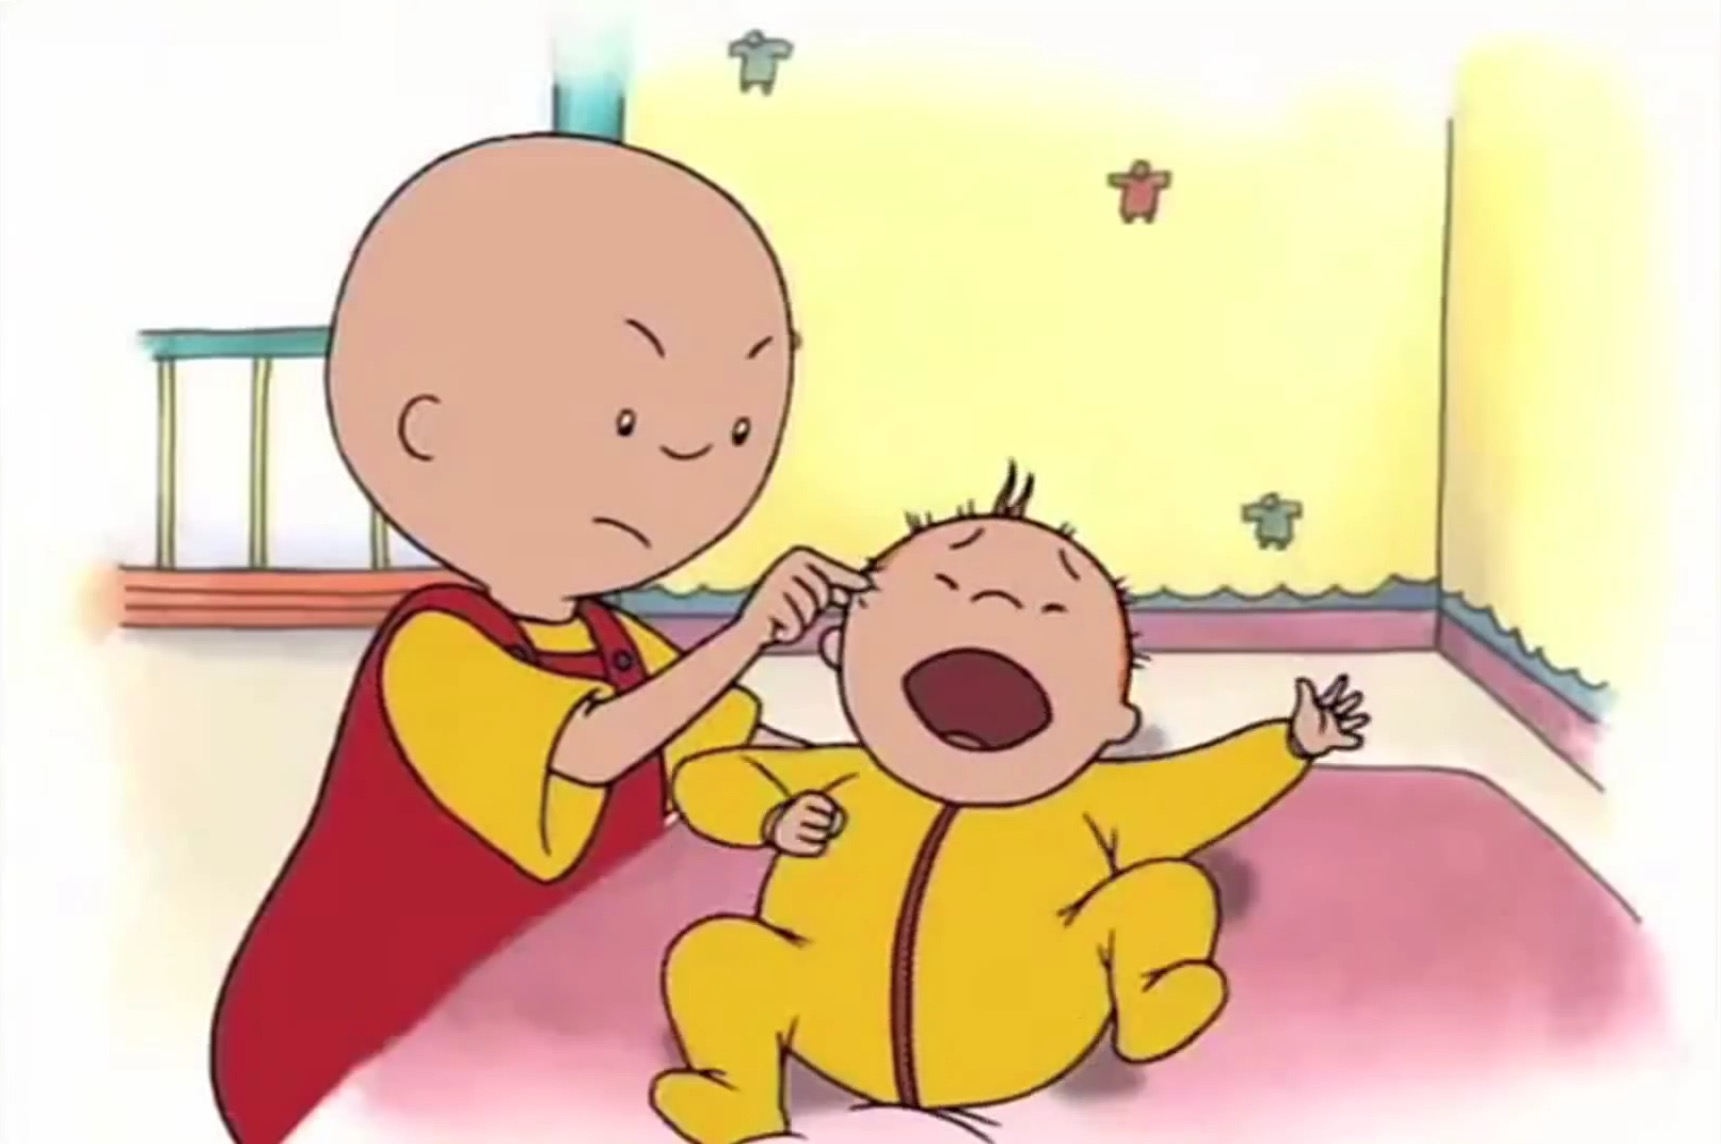 Animated Atrocities Big Brother Caillou By Regulas314 On Deviantart